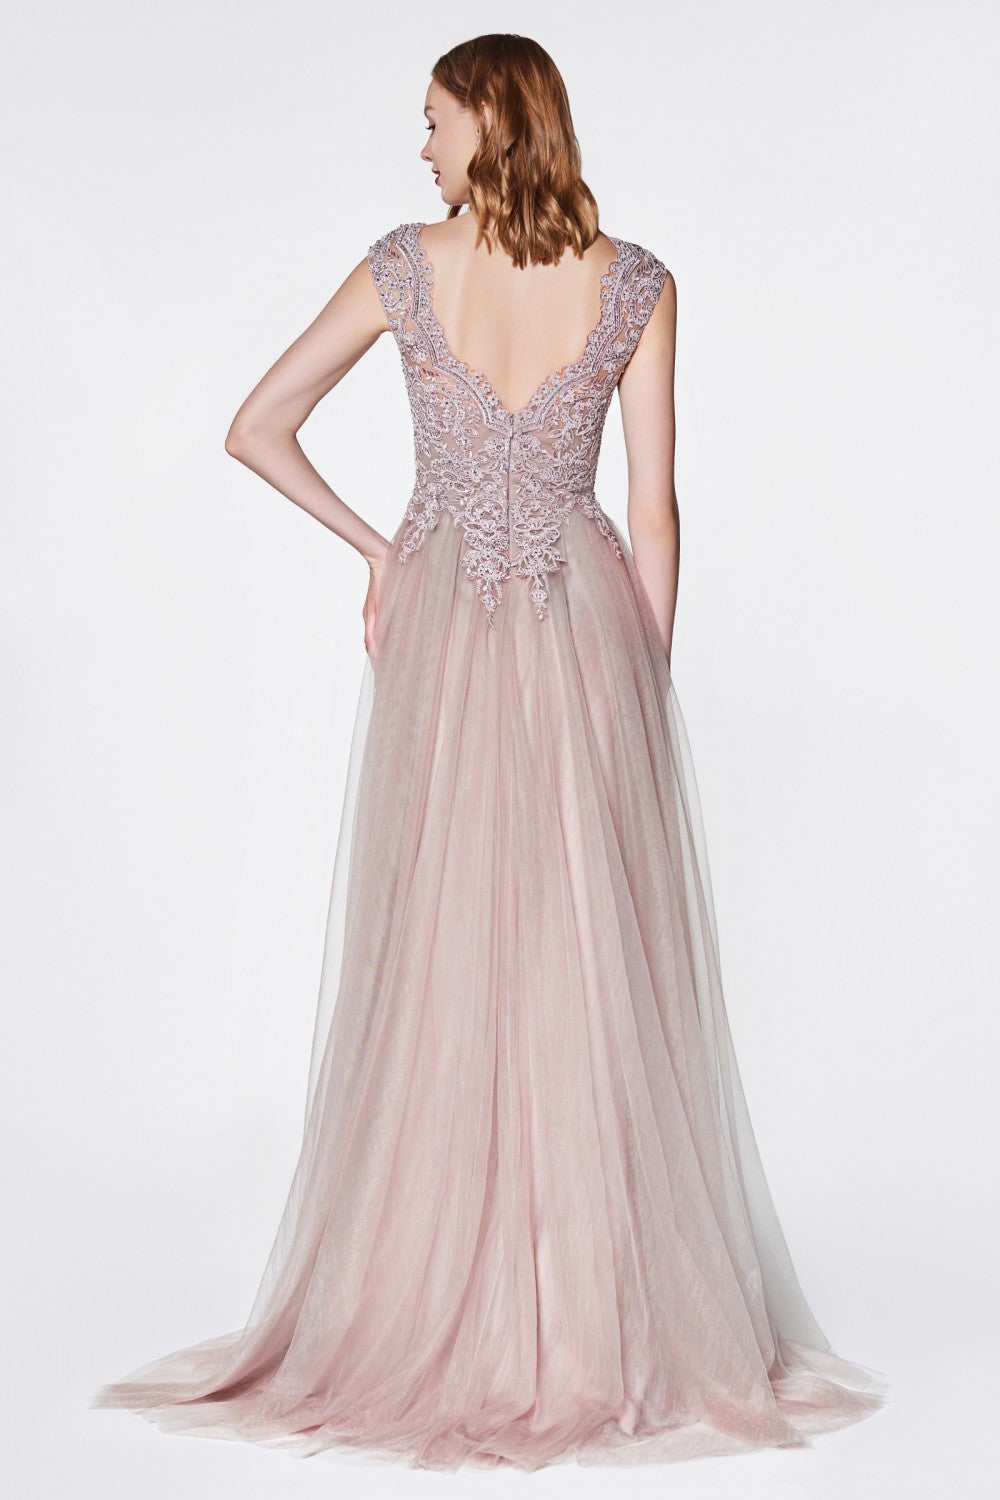 Flowy A-Line Tulle Gown With Cap Sleeve And Lace Bodice